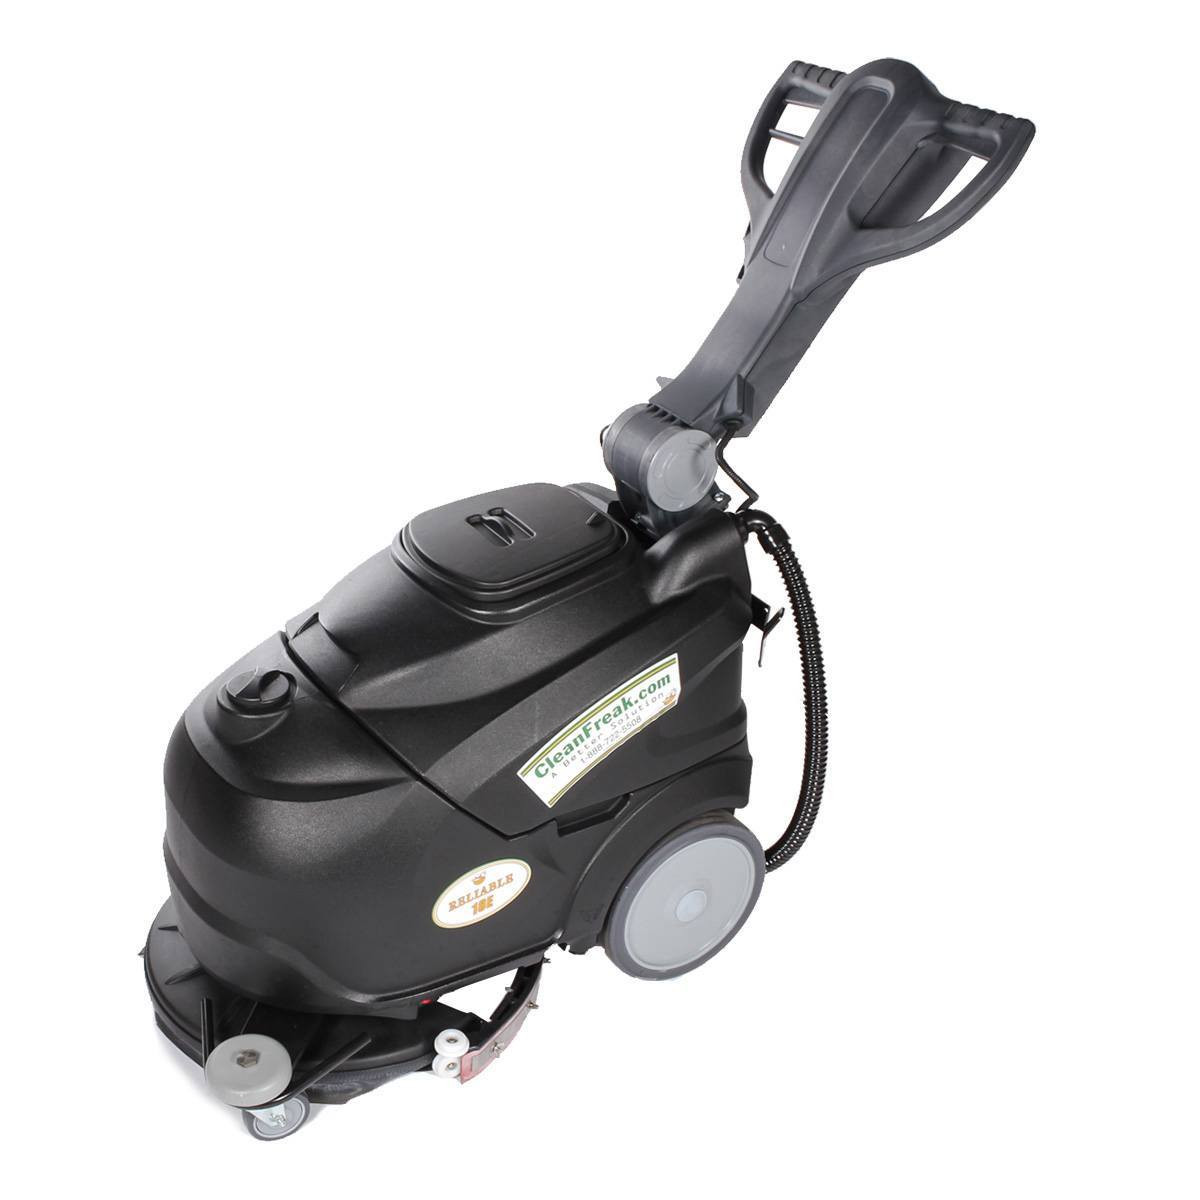 Cleanfreak 174 Reliable 18e Electric Automatic Floor Scrubber